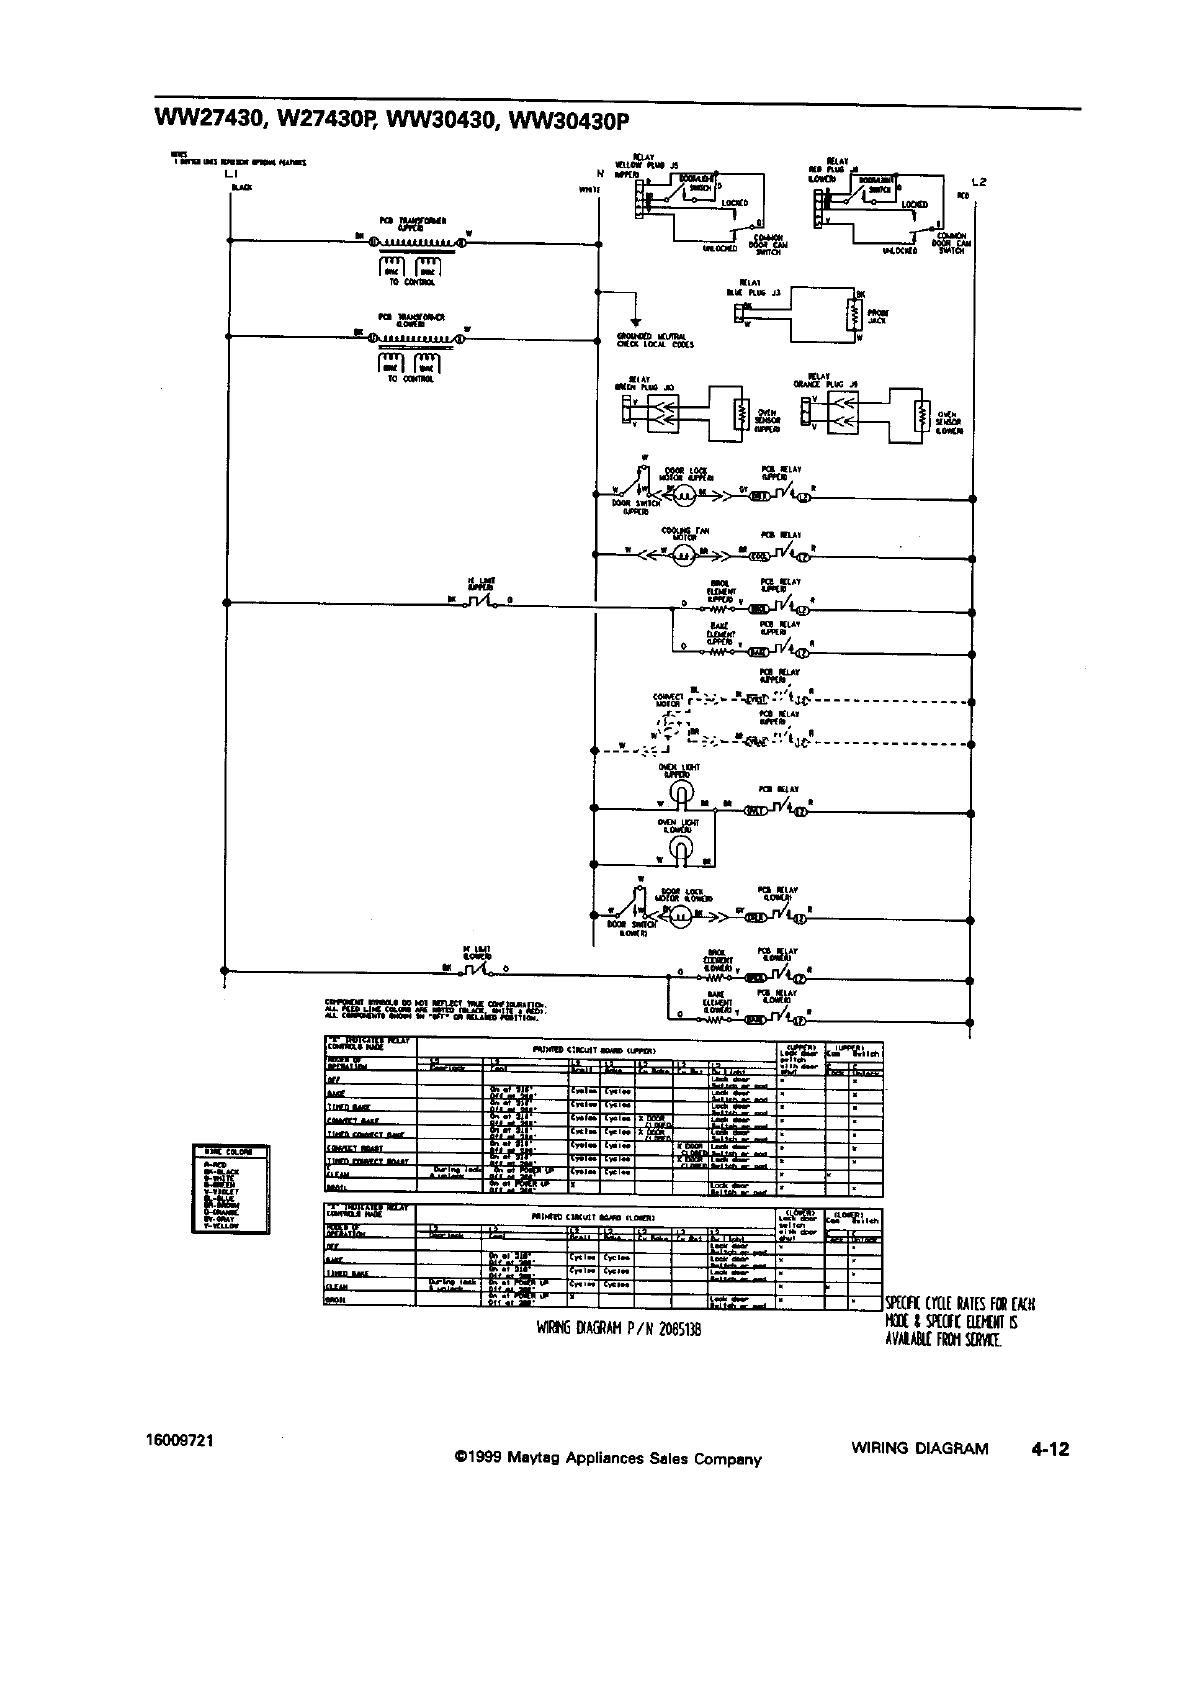 52b2f415 78fa 4259 88c0 be210120d02a bg2c page 44 of jenn air oven jjw8527 user guide manualsonline com Basic Electrical Wiring Diagrams at reclaimingppi.co